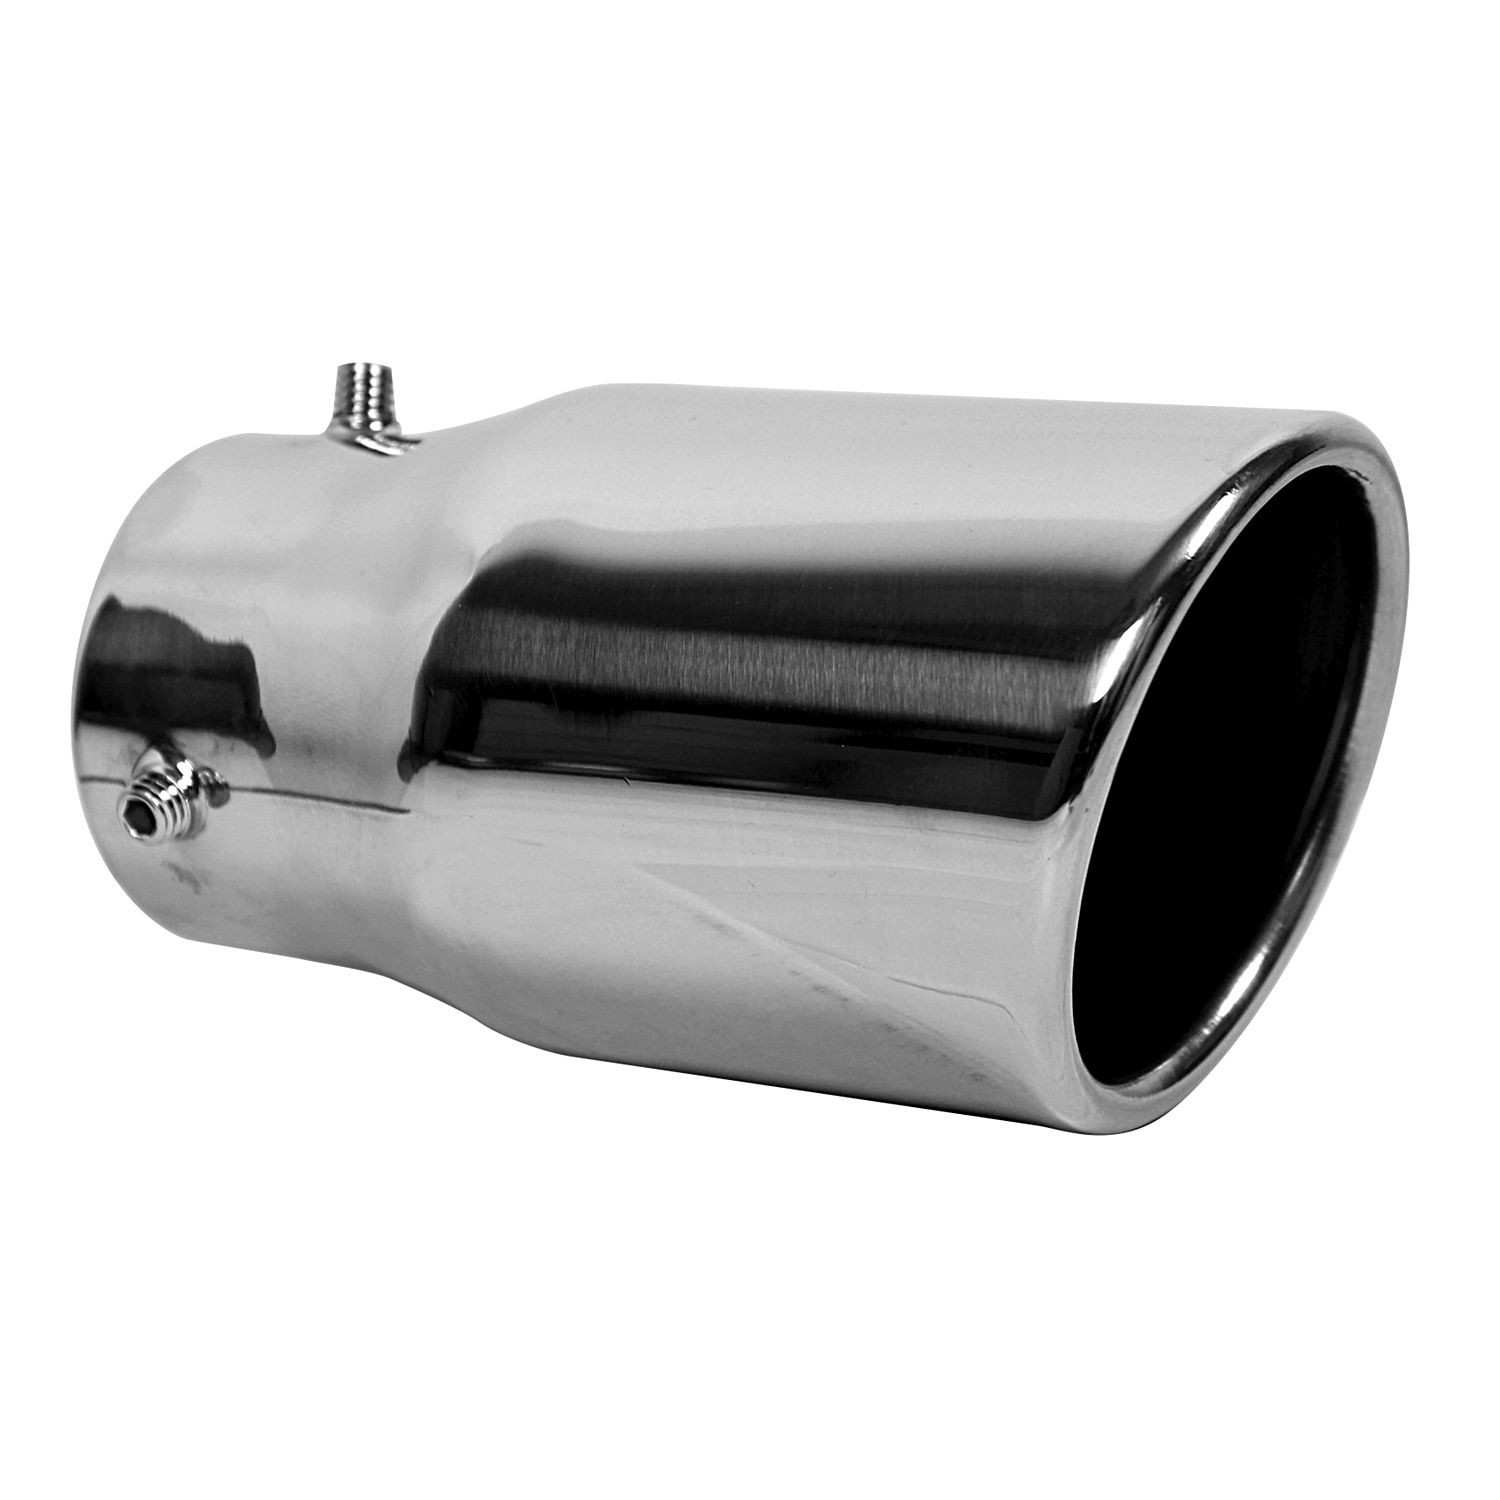 AP EXHAUST W/O FEDERAL CONVERTER - Exhaust Tail Pipe Tip (Left) - APK ST1253S